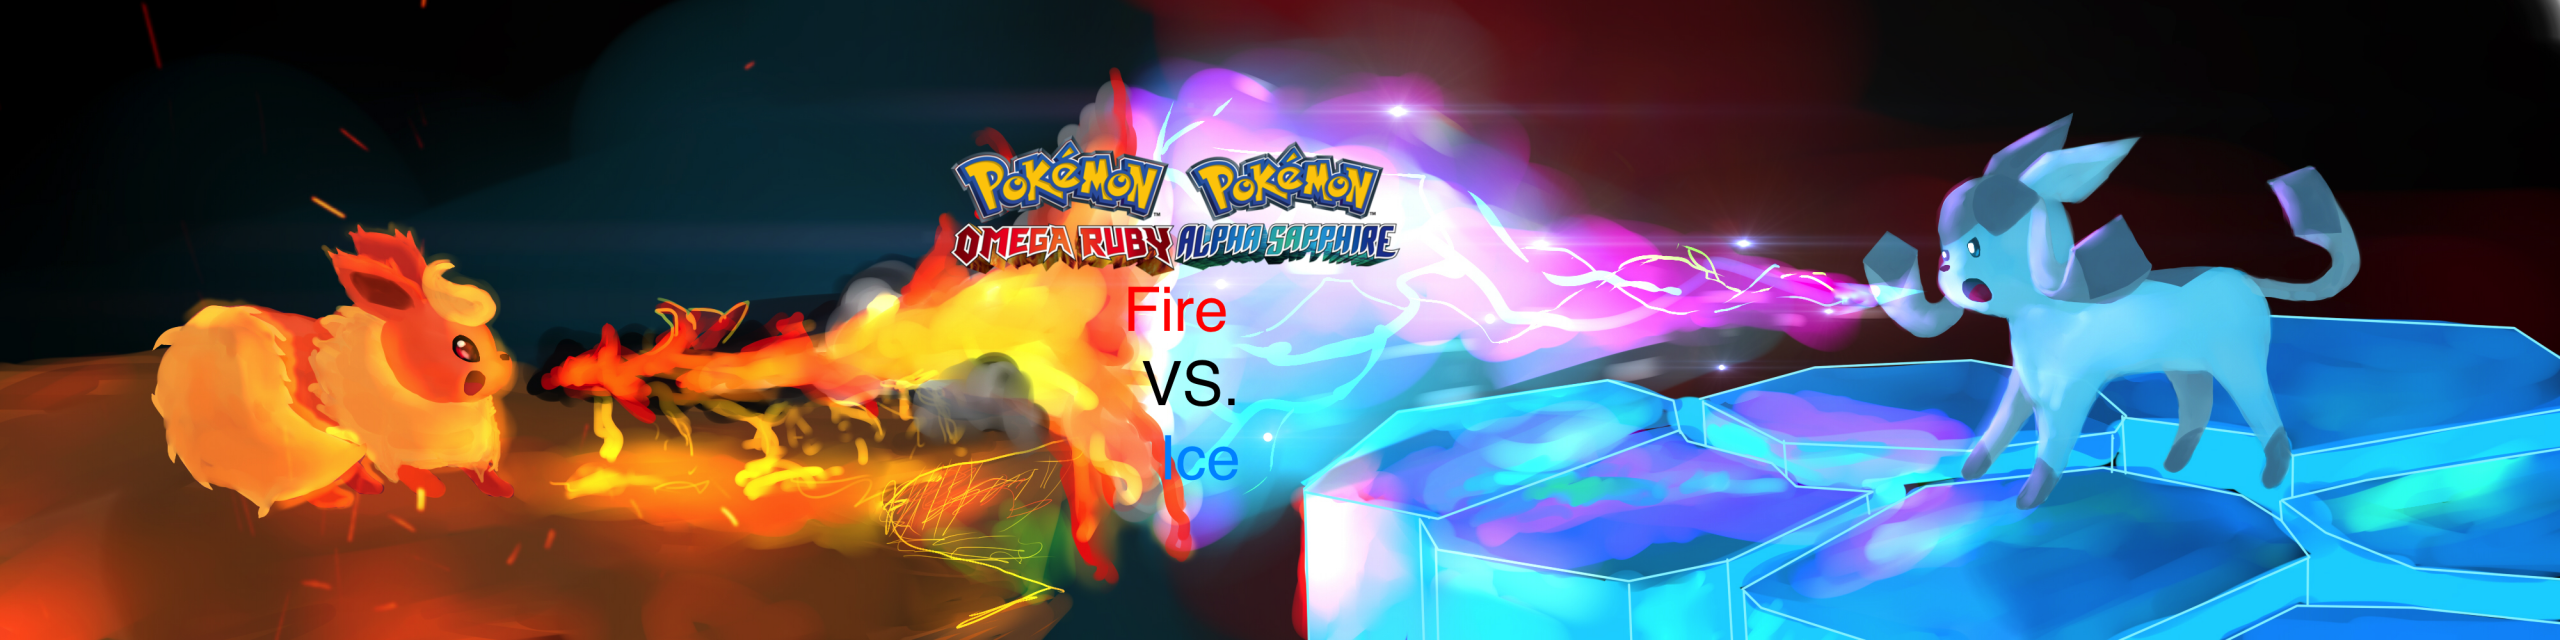 Fire Vs Ice Game